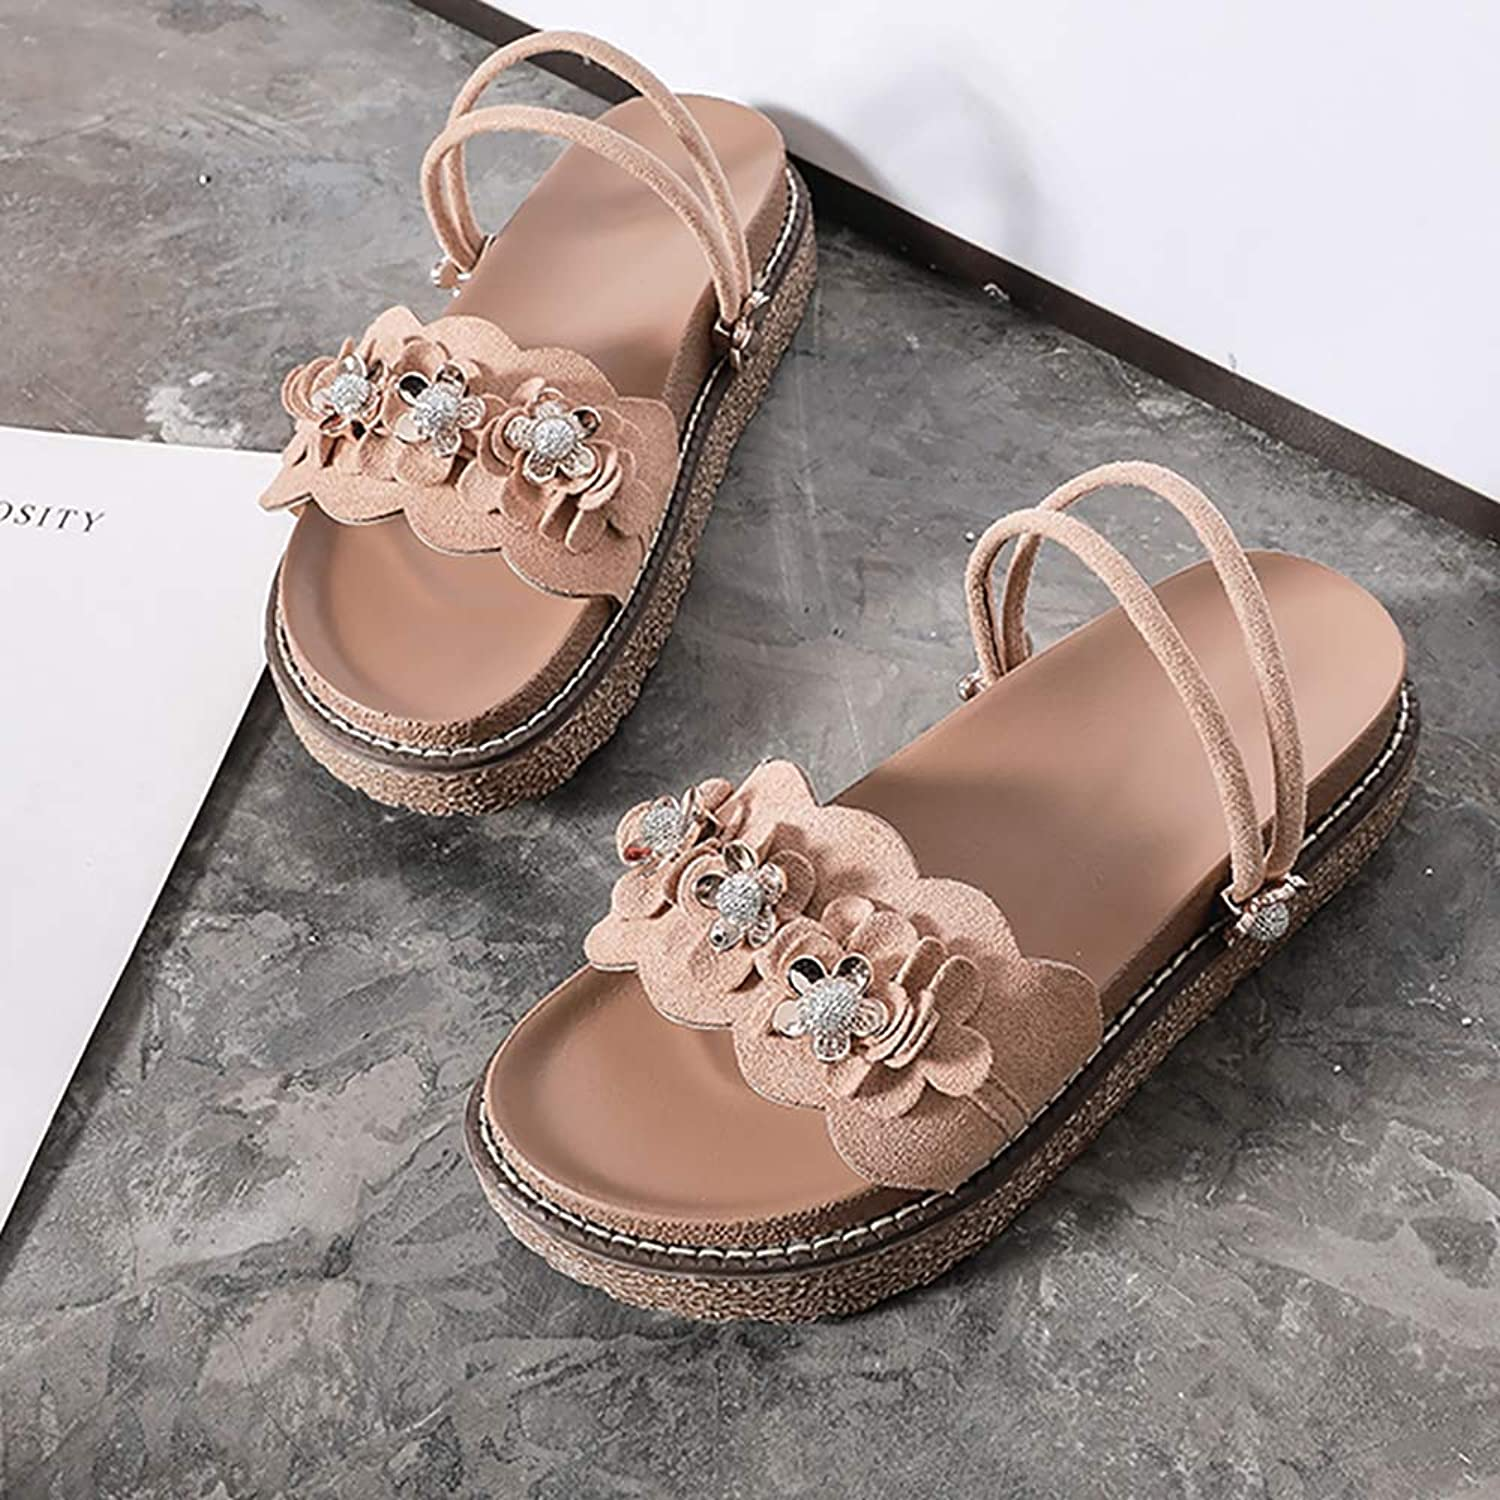 Sandals for Women, Platform Sandals Gladiator Sandals for Women Flower Straps Two Kinds of Summer shoes Black Pink